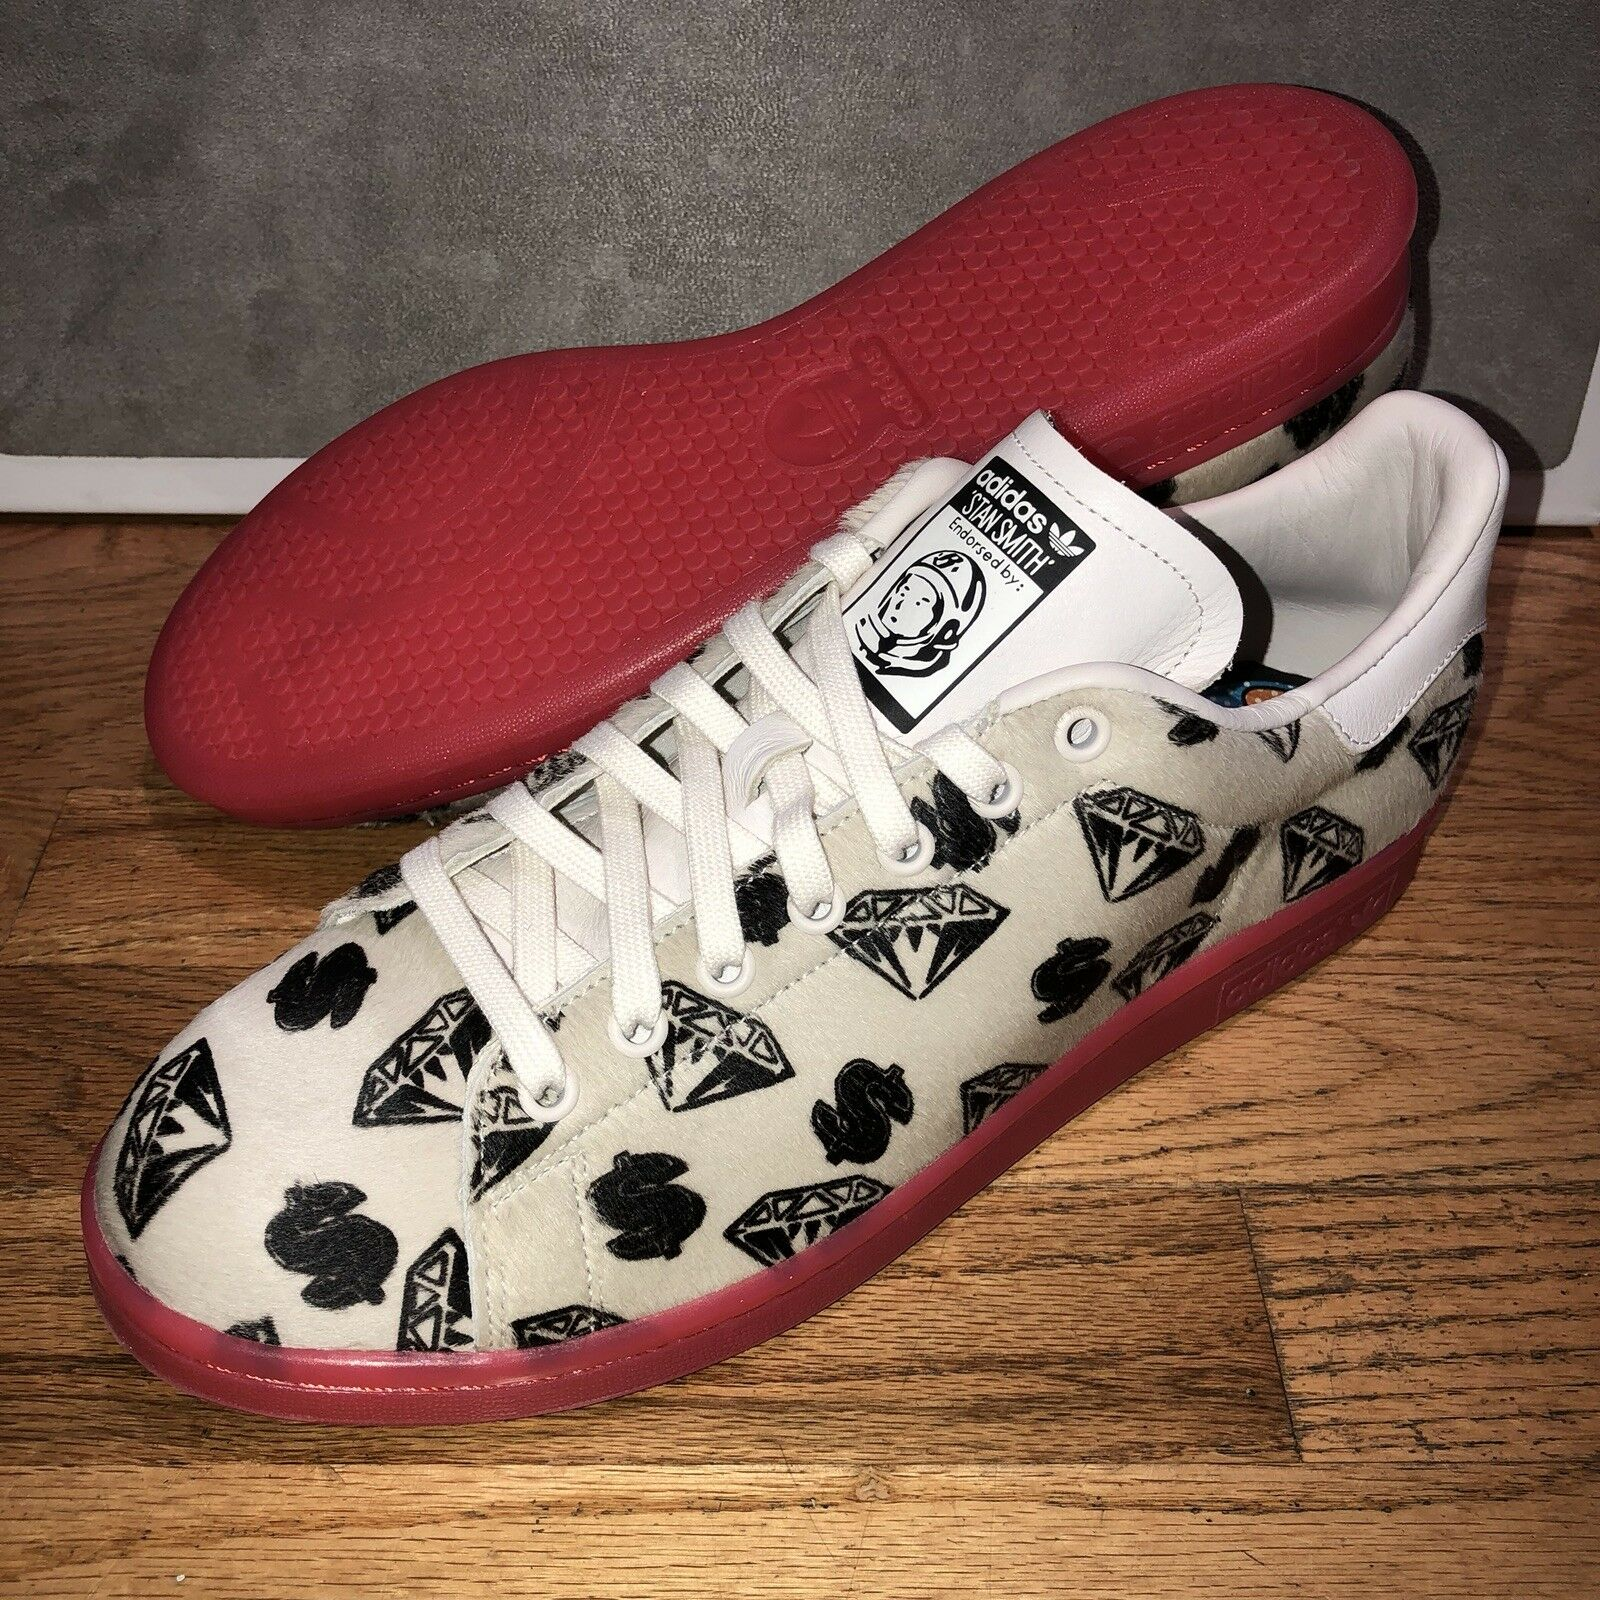 Pharell Pharell Pharell williams der bbc x adidas stan smith pony haar sz 11 weiß - rot neue ds bb107b